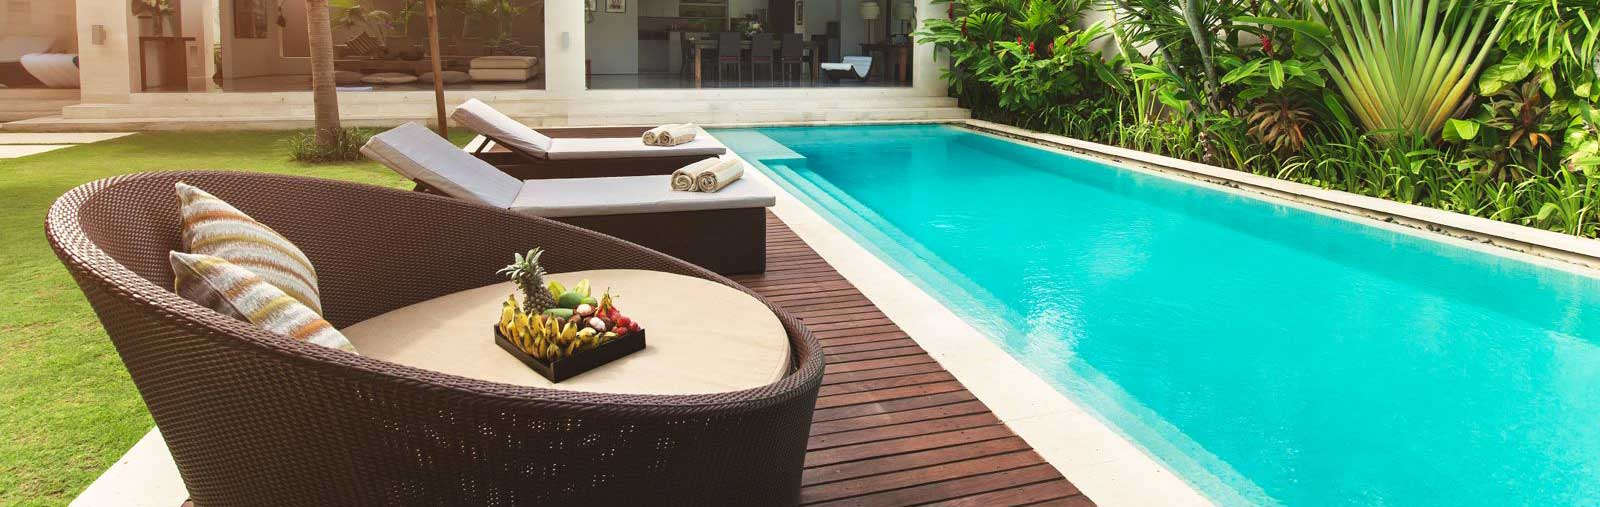 chandravillas-pool-villas-header